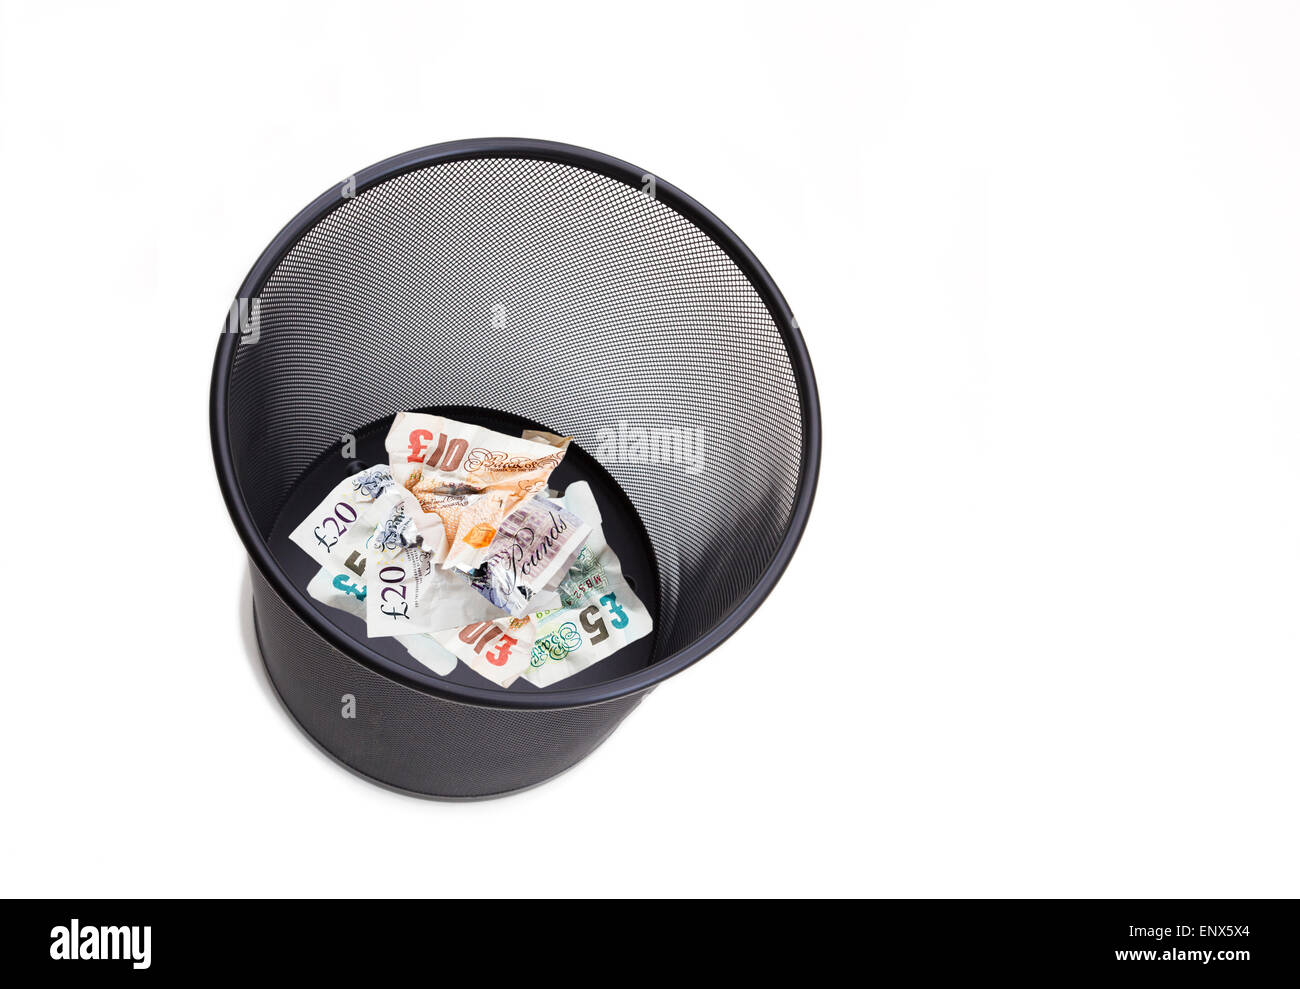 Sterling money pound notes pounds screwed up and thrown away in a wastepaper bin on white to illustrate wasting - Stock Image